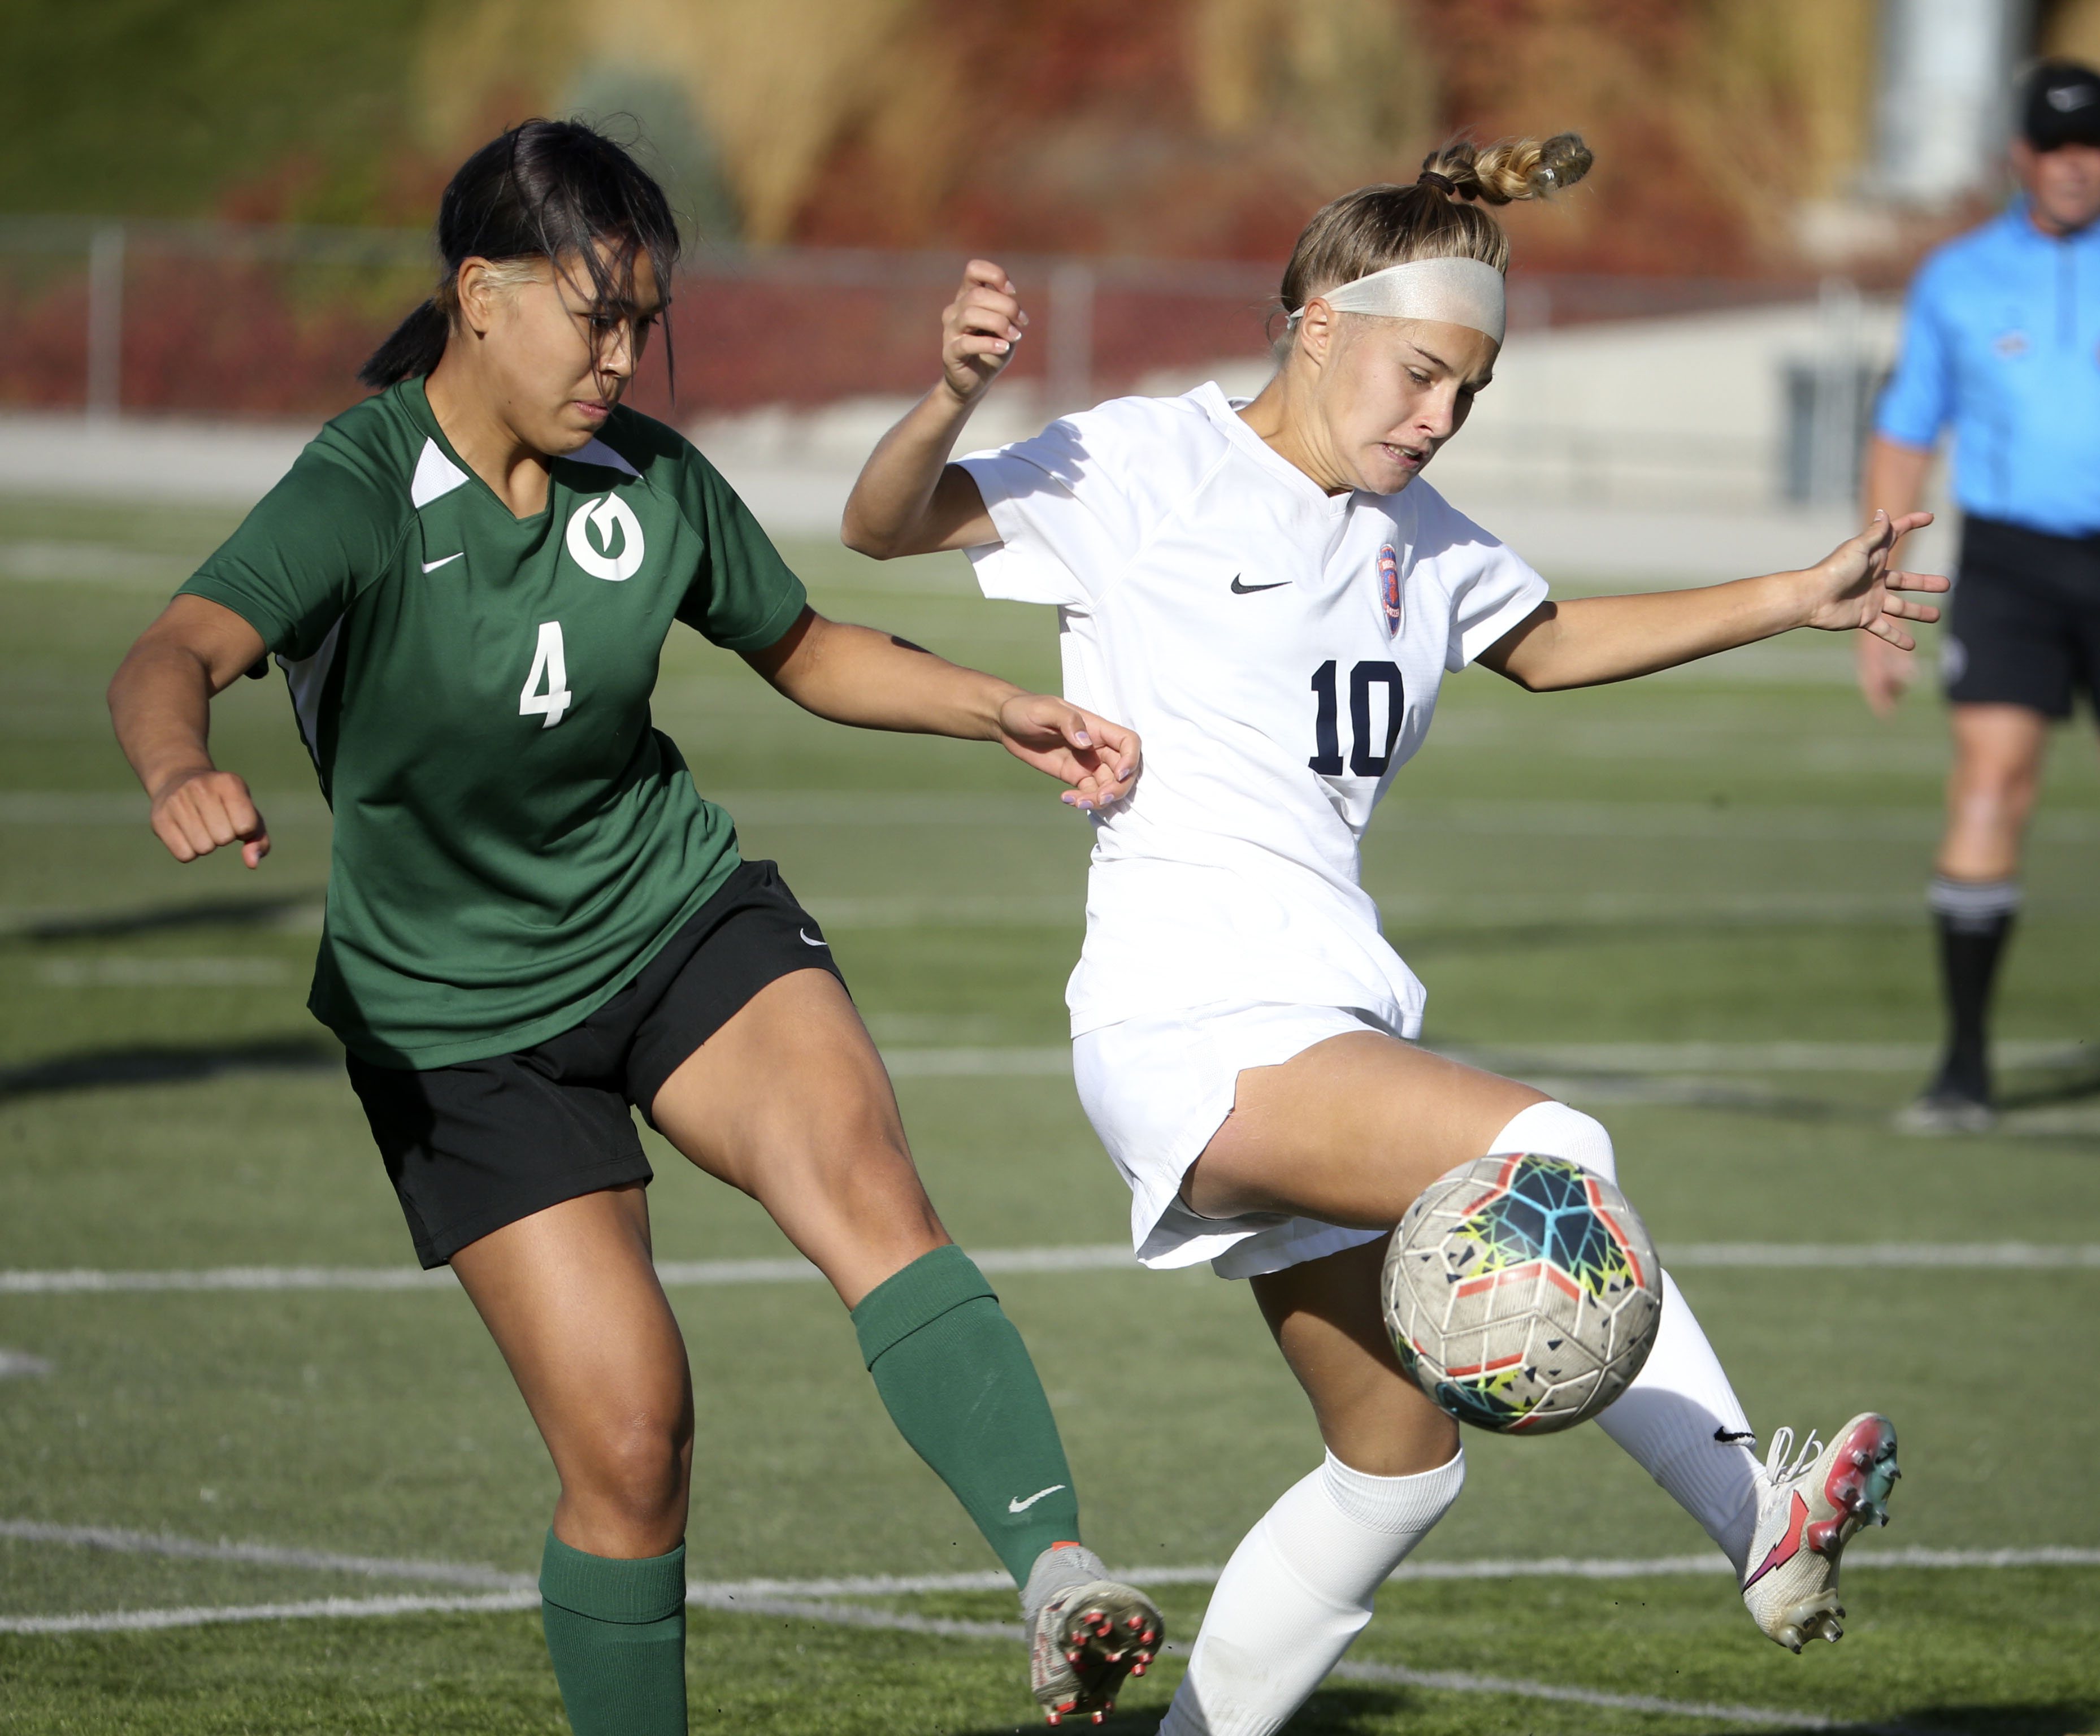 Brighton and Olympus compete in the 5A high school girls soccer quarterfinals in Holladay on Thursday, Oct. 15, 2020.